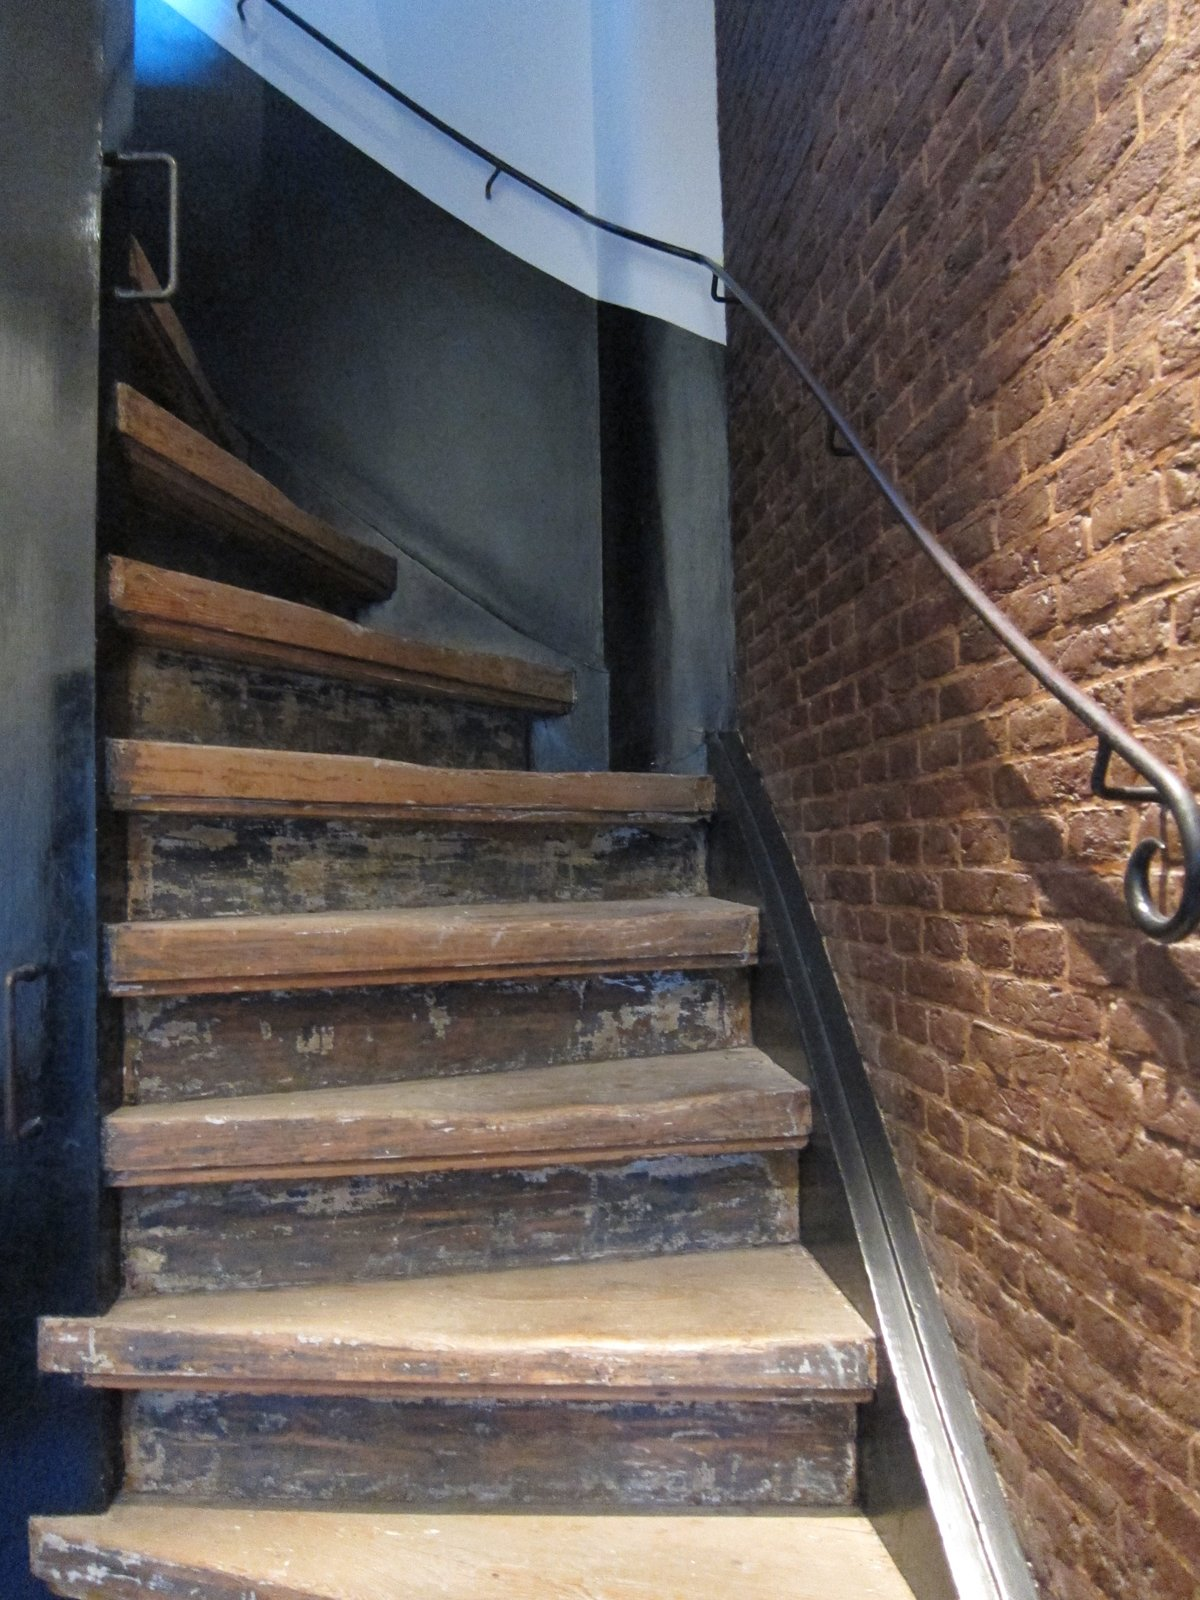 Throughout the hotel are original historic details, including this steep twisting staircase that led from the main floor of the hotel to the second floor (yes, there is also an elevator!).  The Dylan, Amsterdam by Jaime Gillin